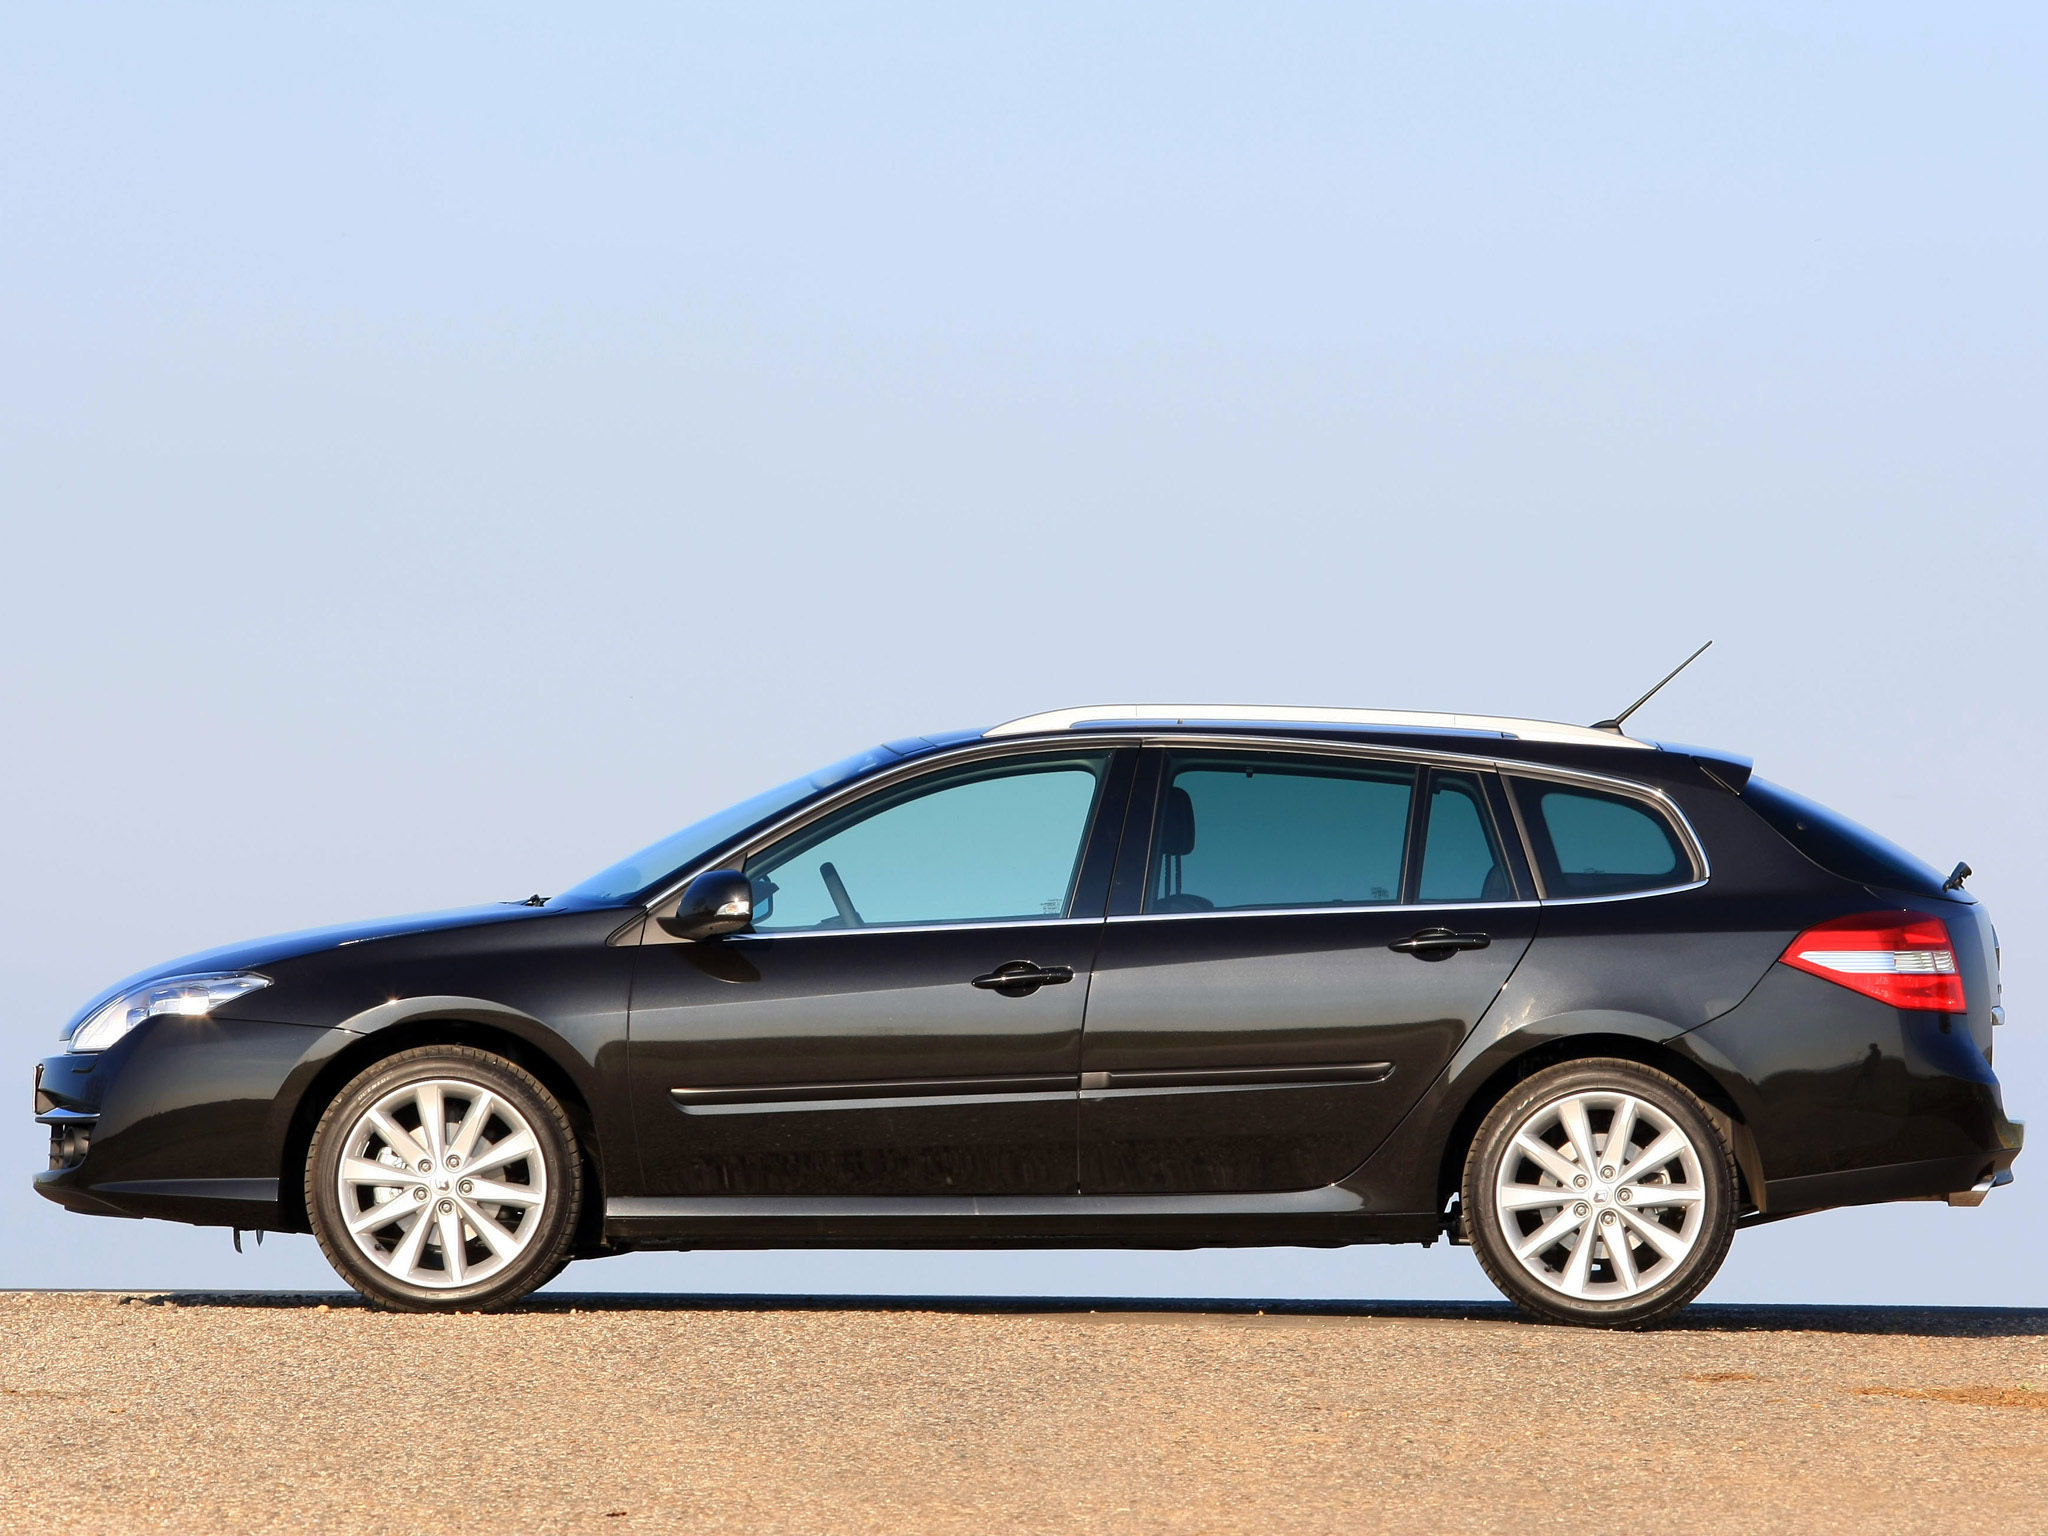 2007 renault laguna iii estate pictures information and specs auto. Black Bedroom Furniture Sets. Home Design Ideas